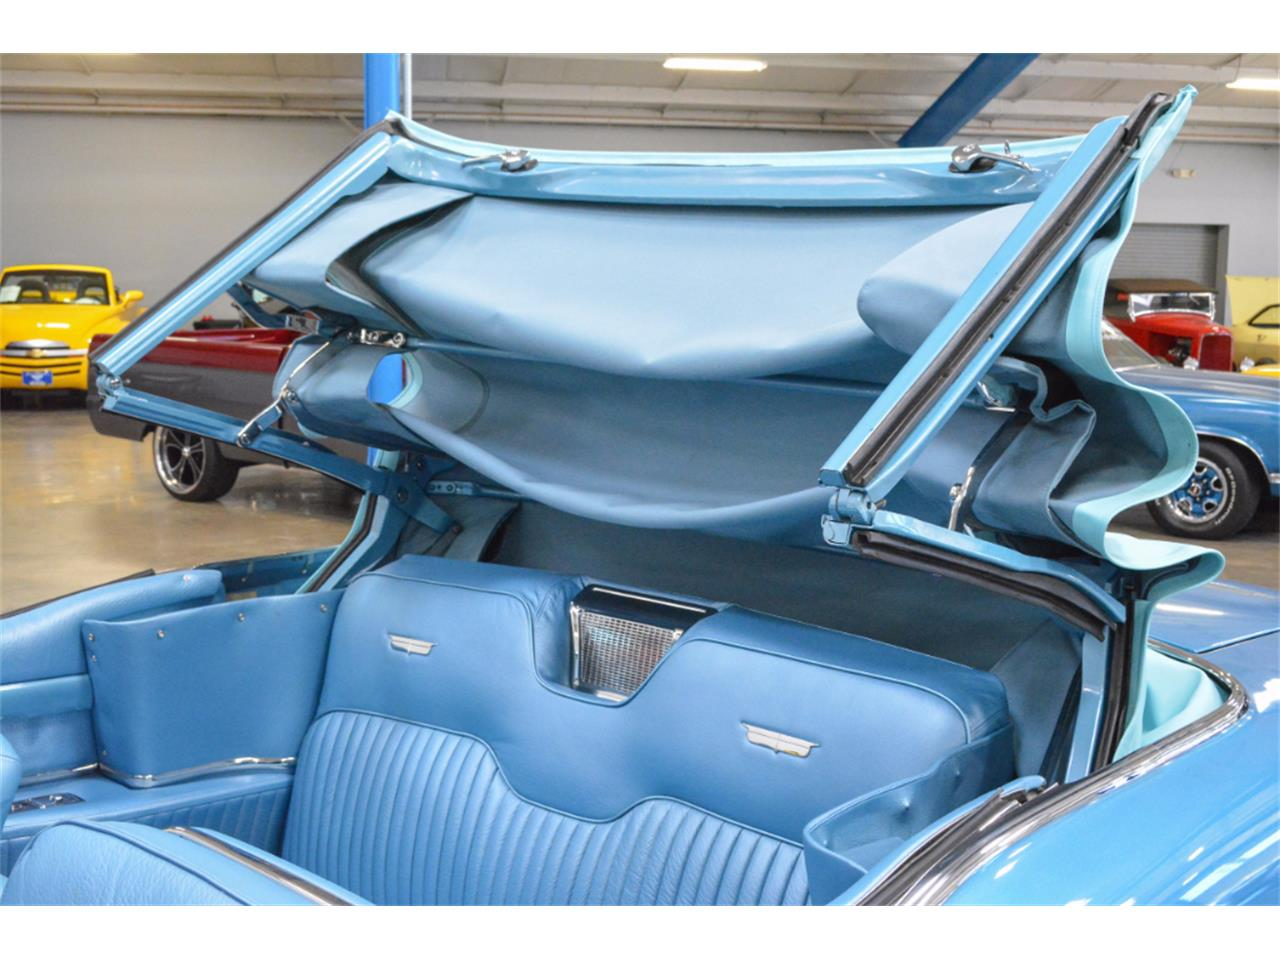 Large Picture of 1957 Cadillac Eldorado located in Salem Ohio Auction Vehicle Offered by John Kufleitner's Galleria - LKLZ